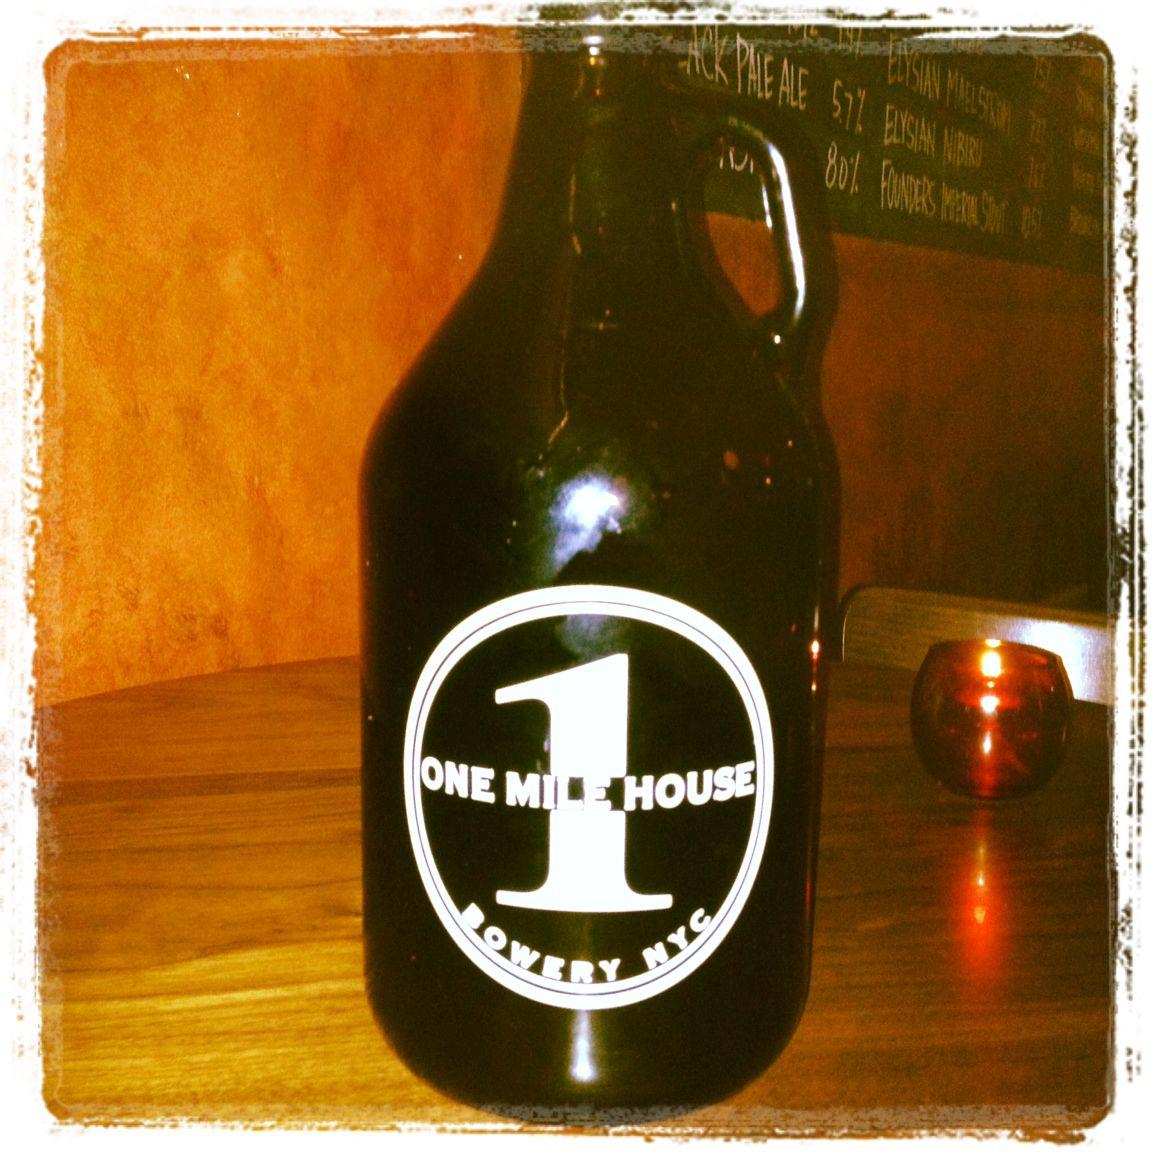 One Mile House Growler